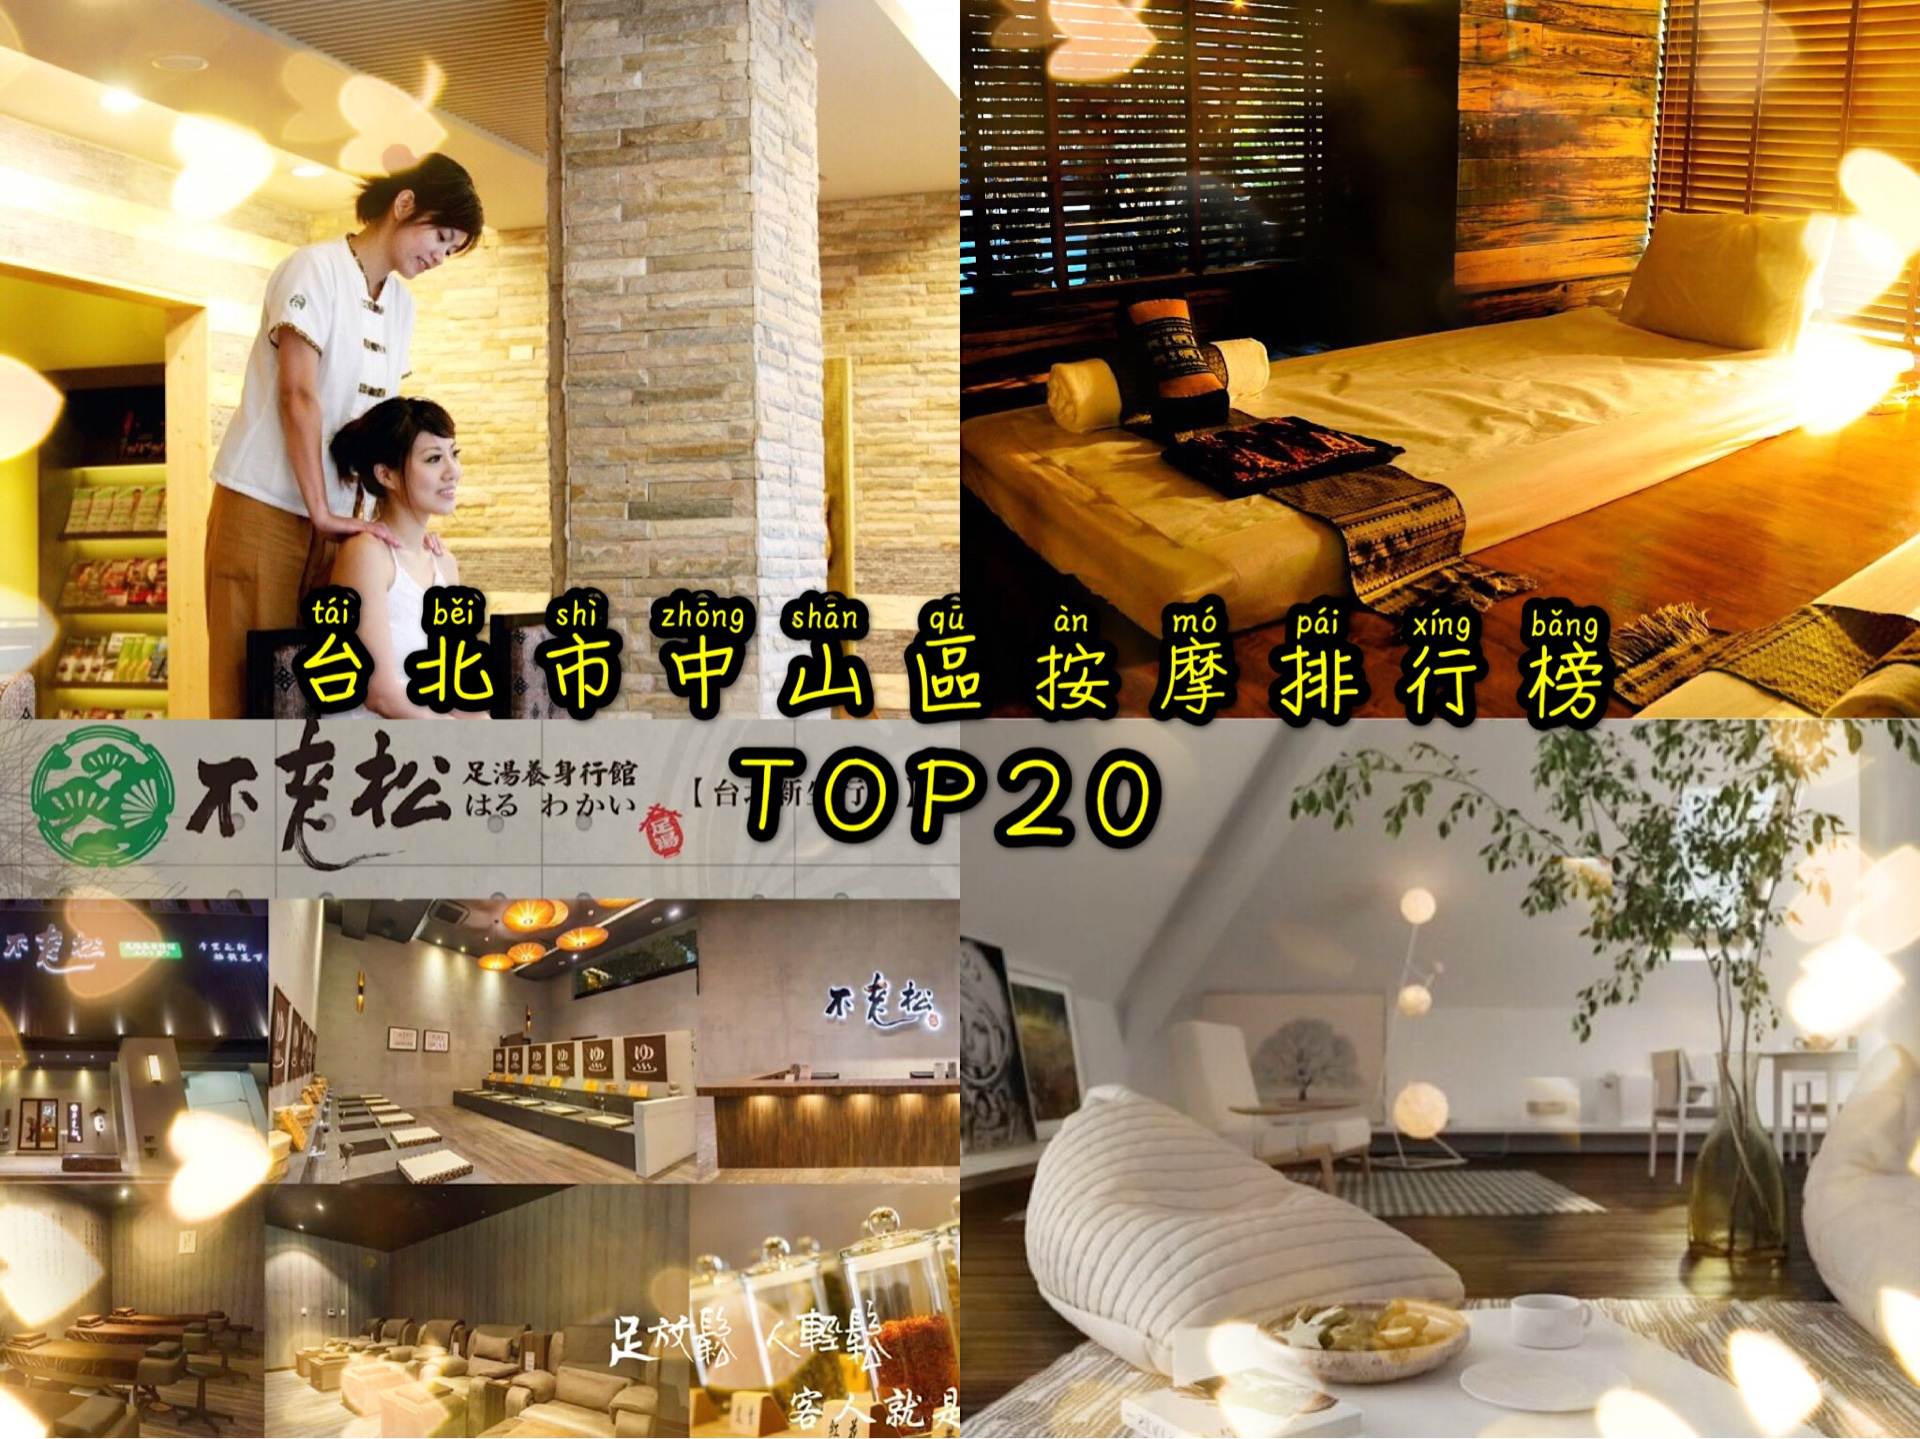 The most beautiful southran asias vacational style Spa-| Relax 33 spa makes you seaiser enjoy relaxing feeling in ZhongShang MRT Station @東南亞投資報告